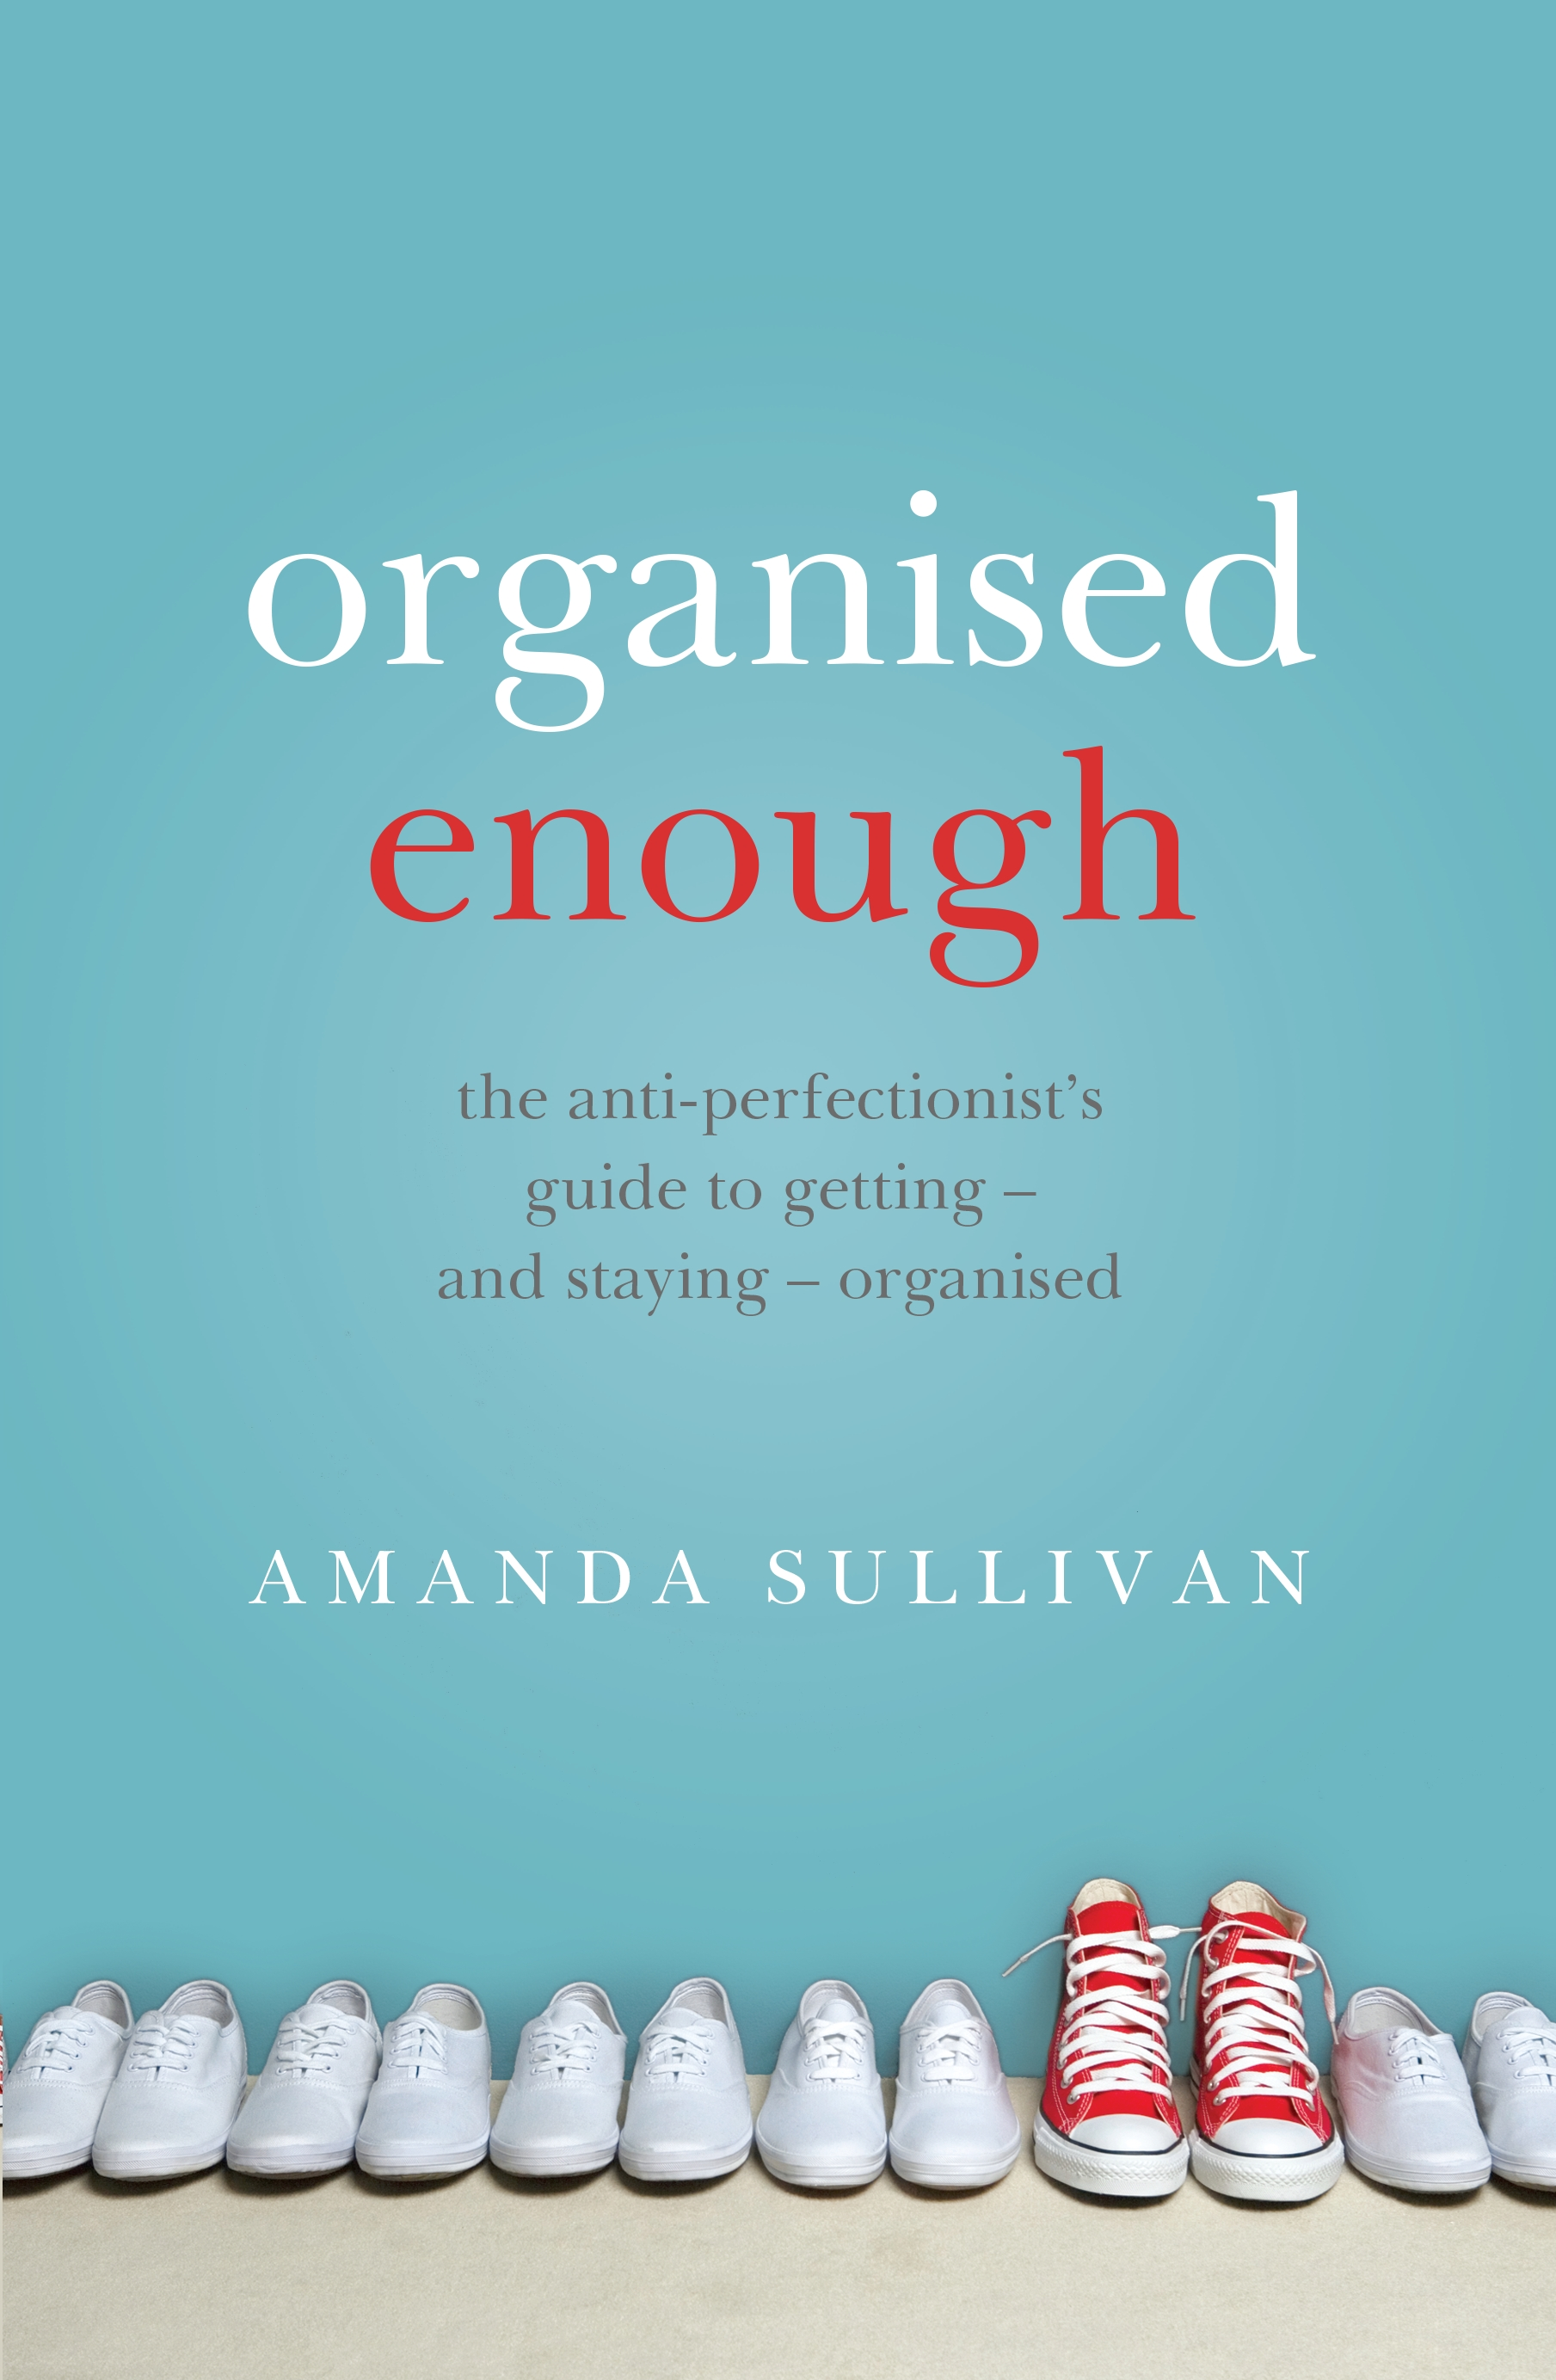 Organised EnoughThe Anti-Perfectionist's Guide to Order by Amanda Sullivan, ISBN: 9780143783244